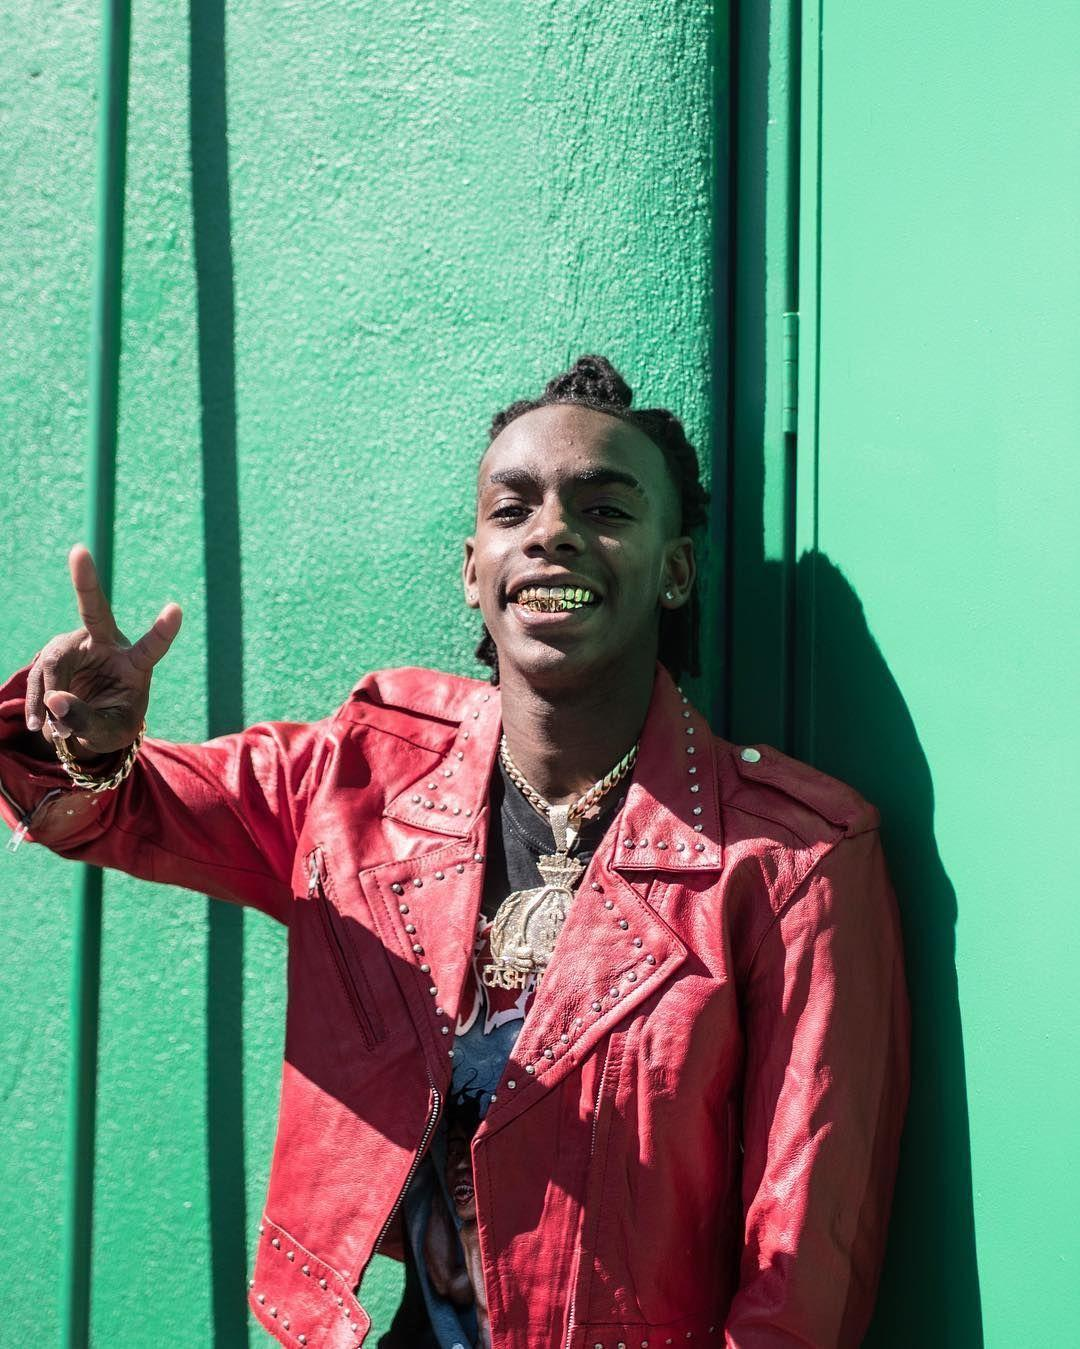 Ynw Melly Wallpapers Wallpaper Cave